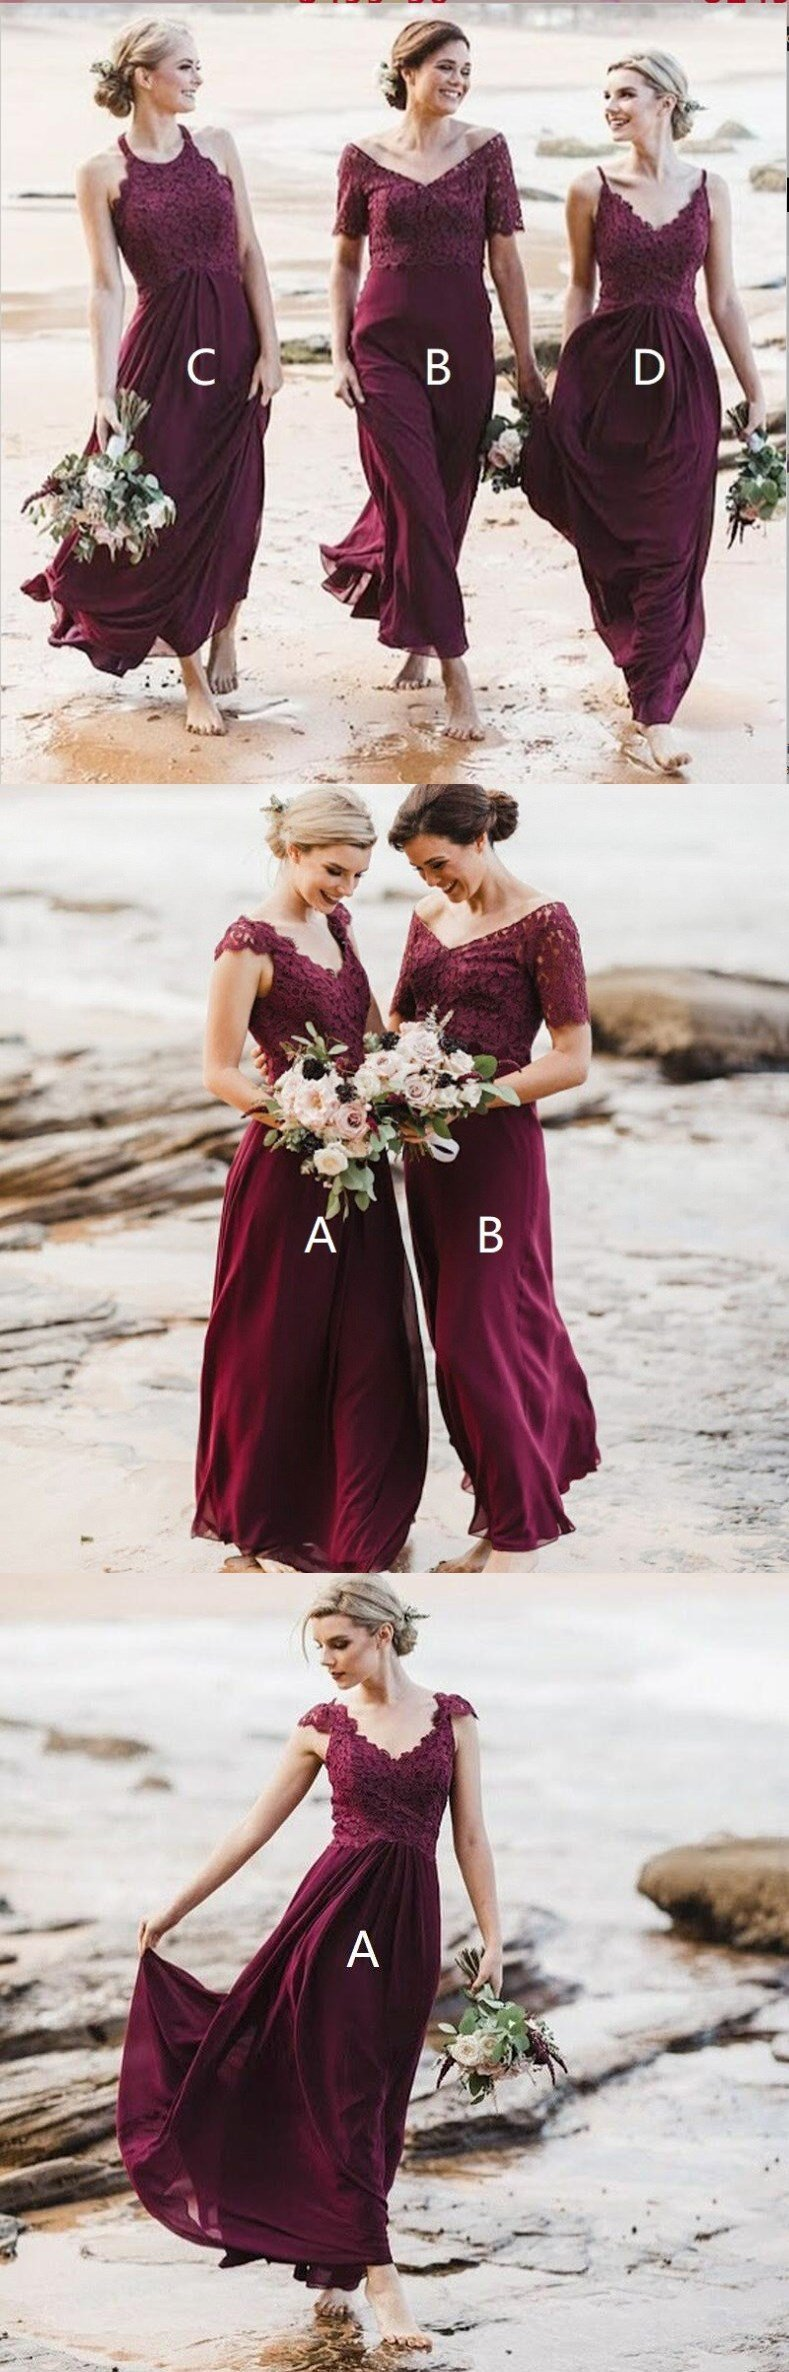 Mismatched A-Line Long Burgundy Cheap Chiffon Modest Bridesmaid Dress with Lace for Wedding guest,WG353